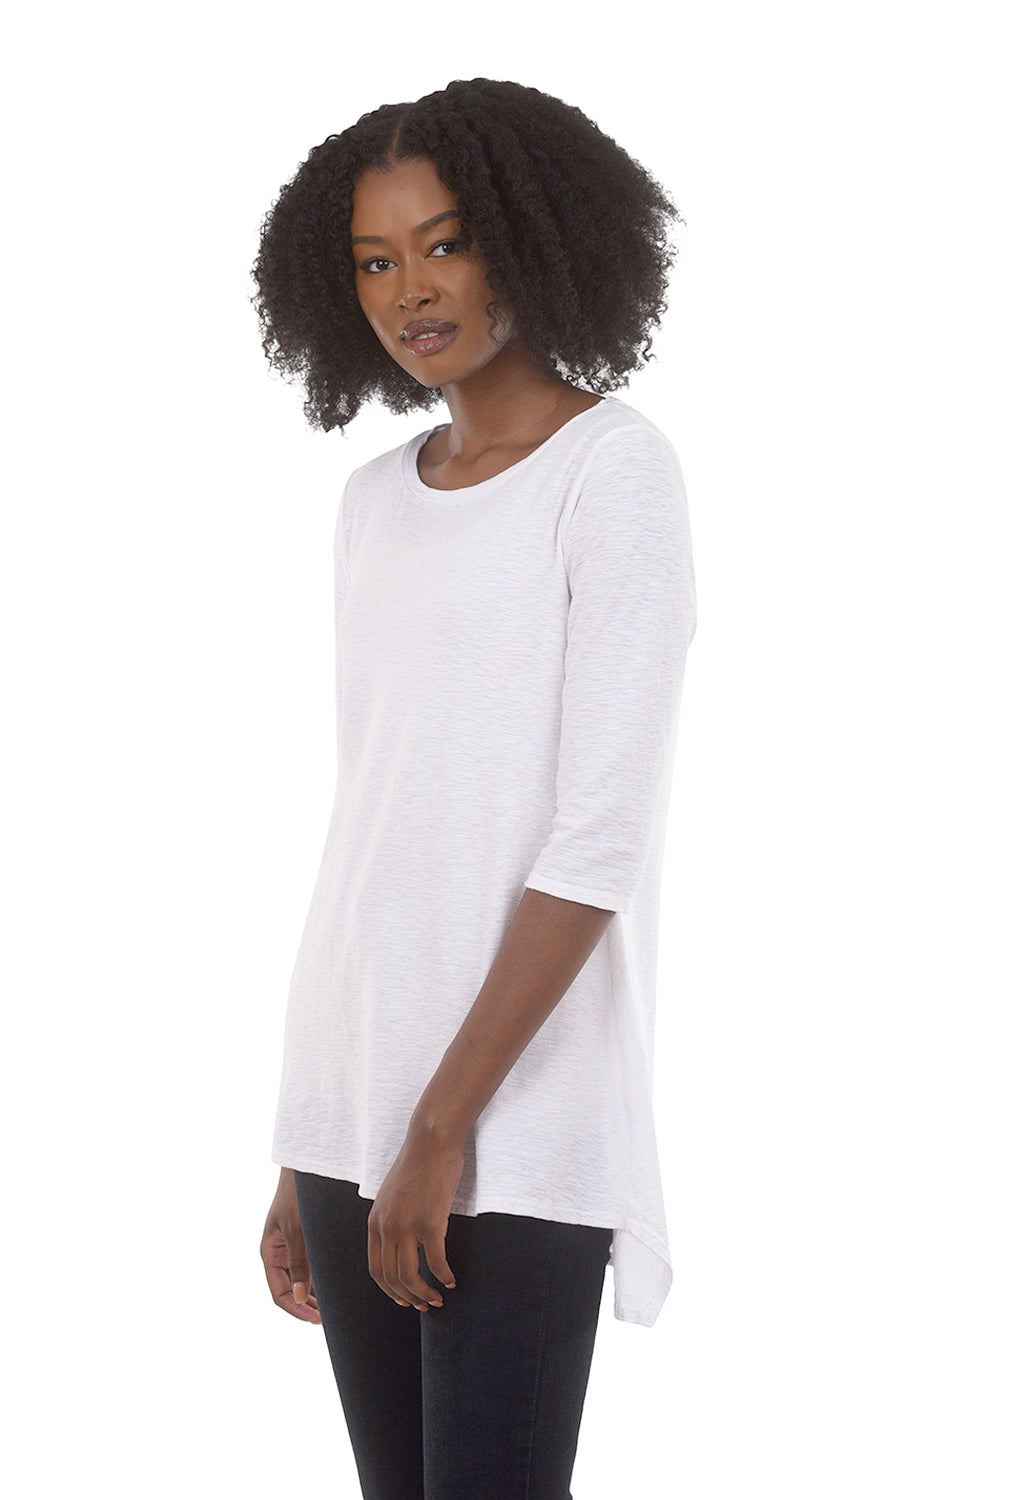 Cut Loose 3/4-Sleeve Long Tee, White